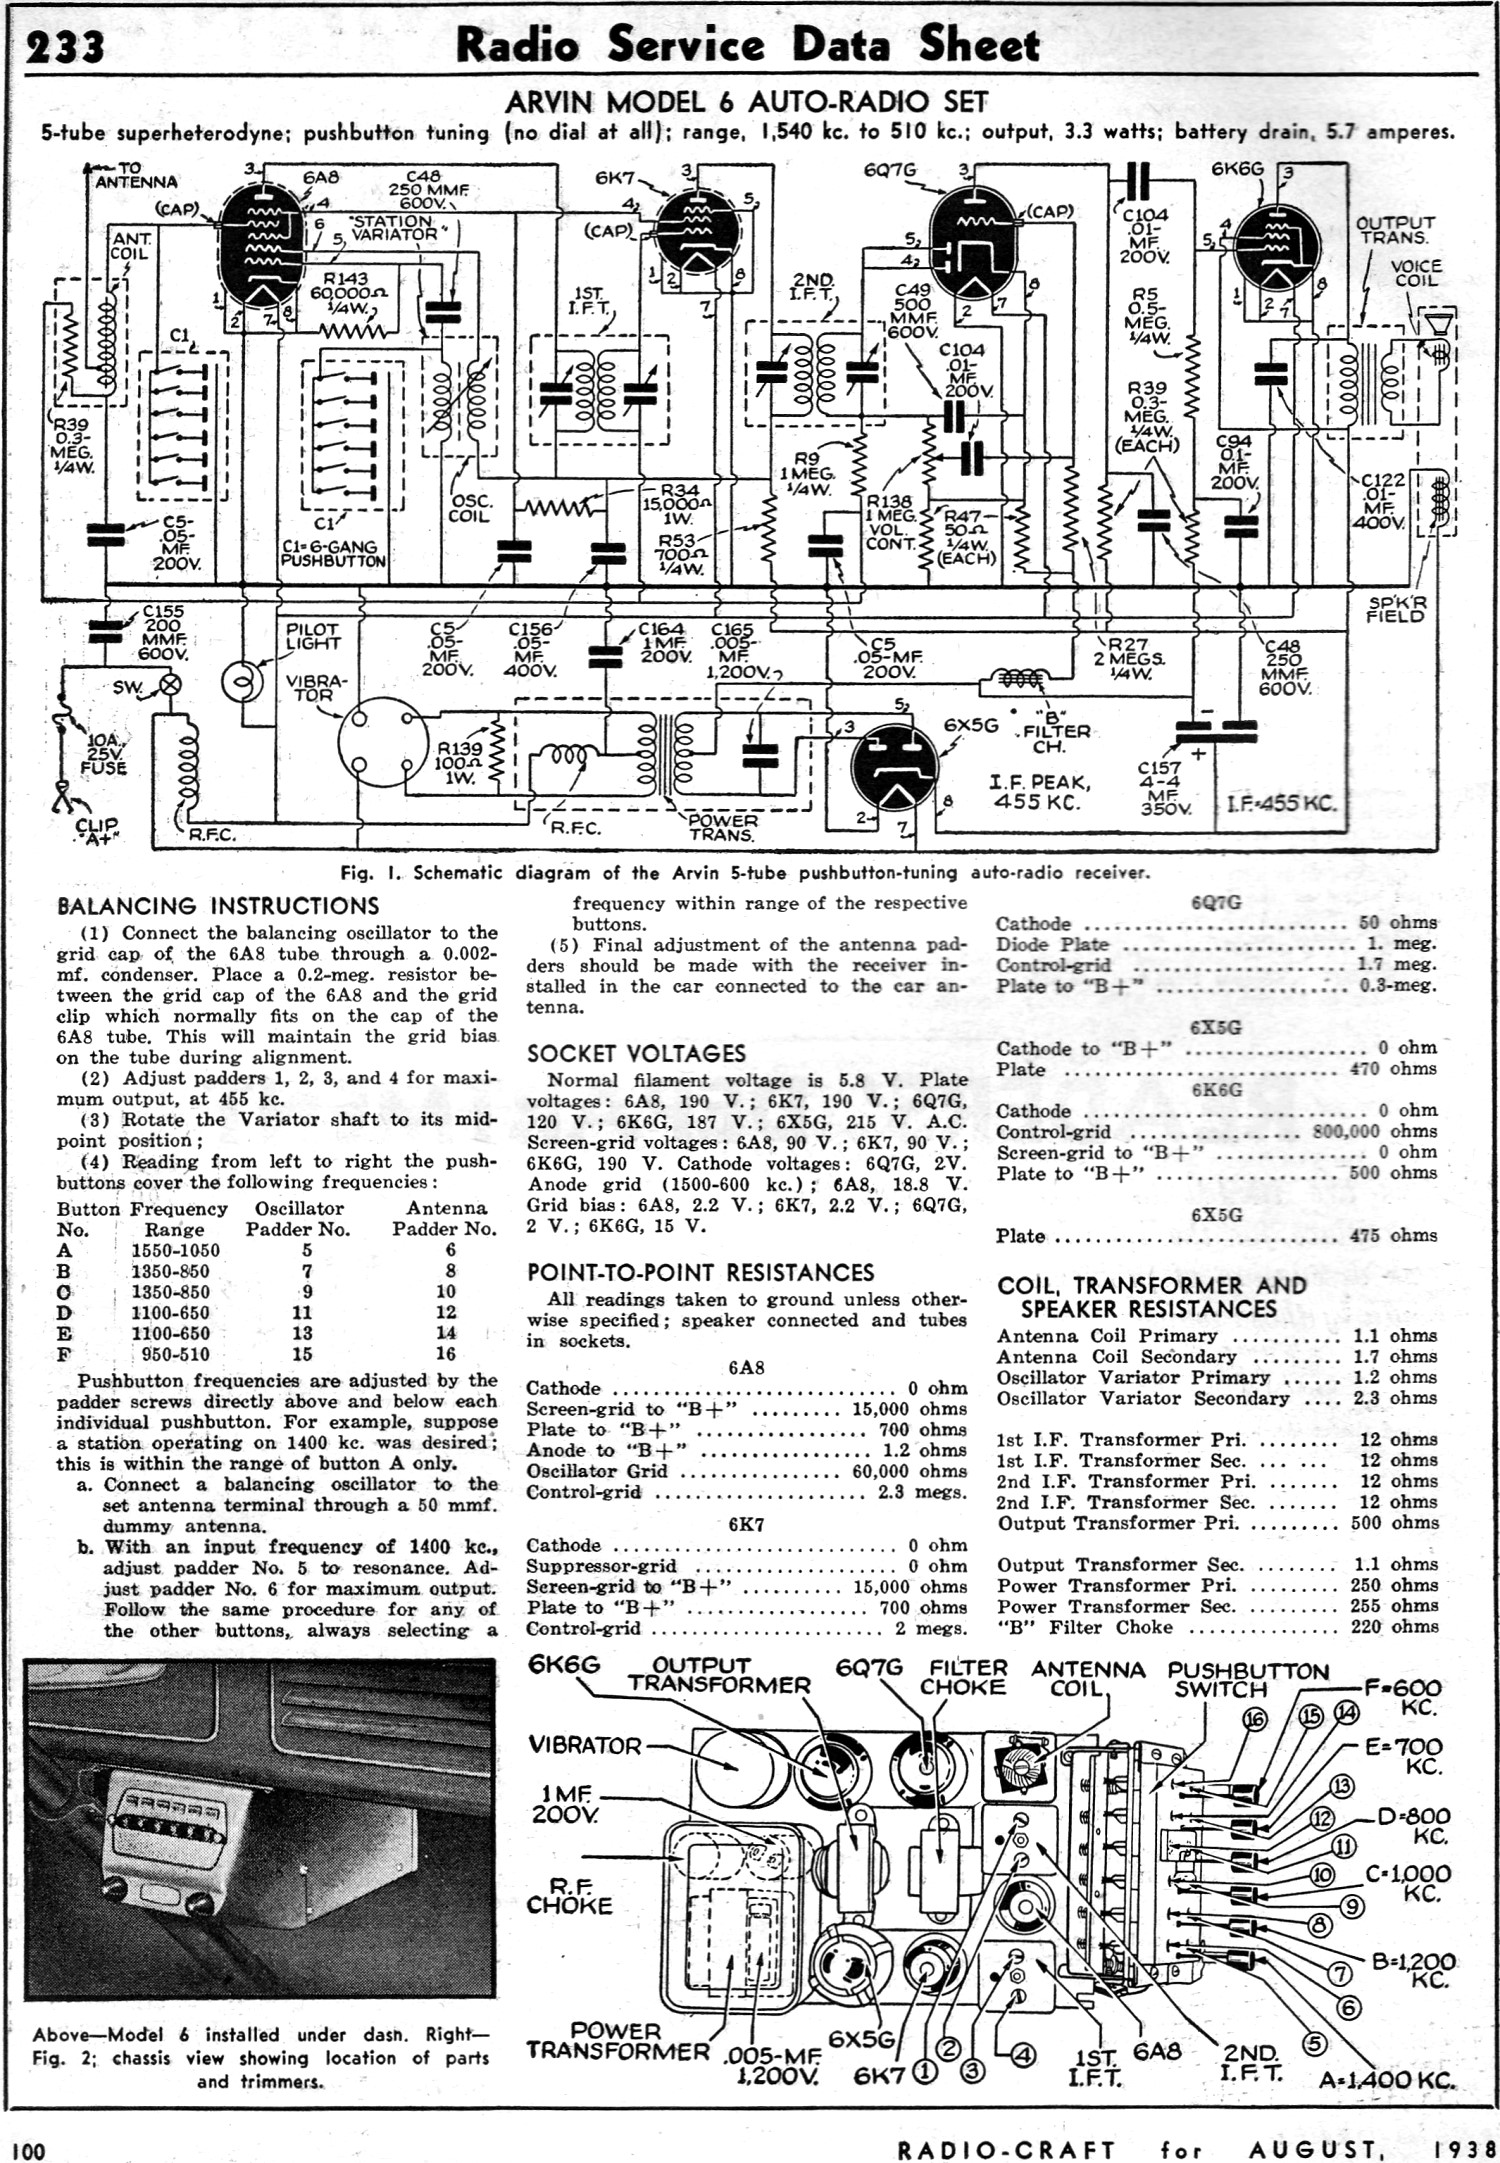 Arvin Model 6 Radio Service Data Sheet August 1938 Radiocraft Rf. Arvin Model 6 Toradio Set Radio Service Data Sheet August 1938 Craft. Wiring. Zenith Tube Radio Schematics 1938 At Scoala.co